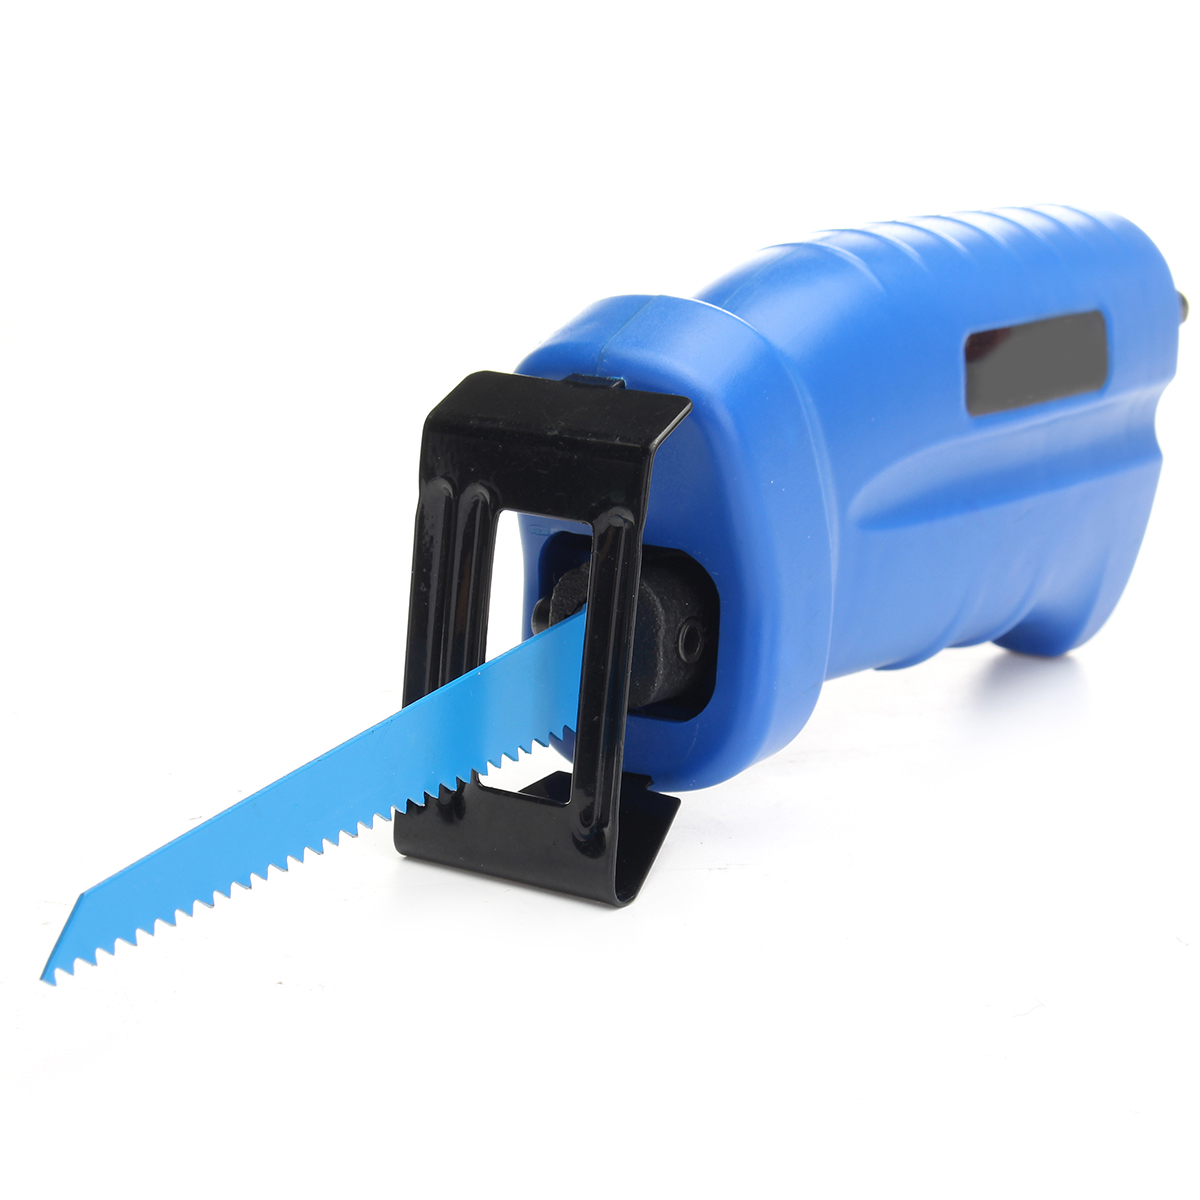 Reciprocating Saw Convert Adapter Woodworking Chainsaw For Cordless Power Drill